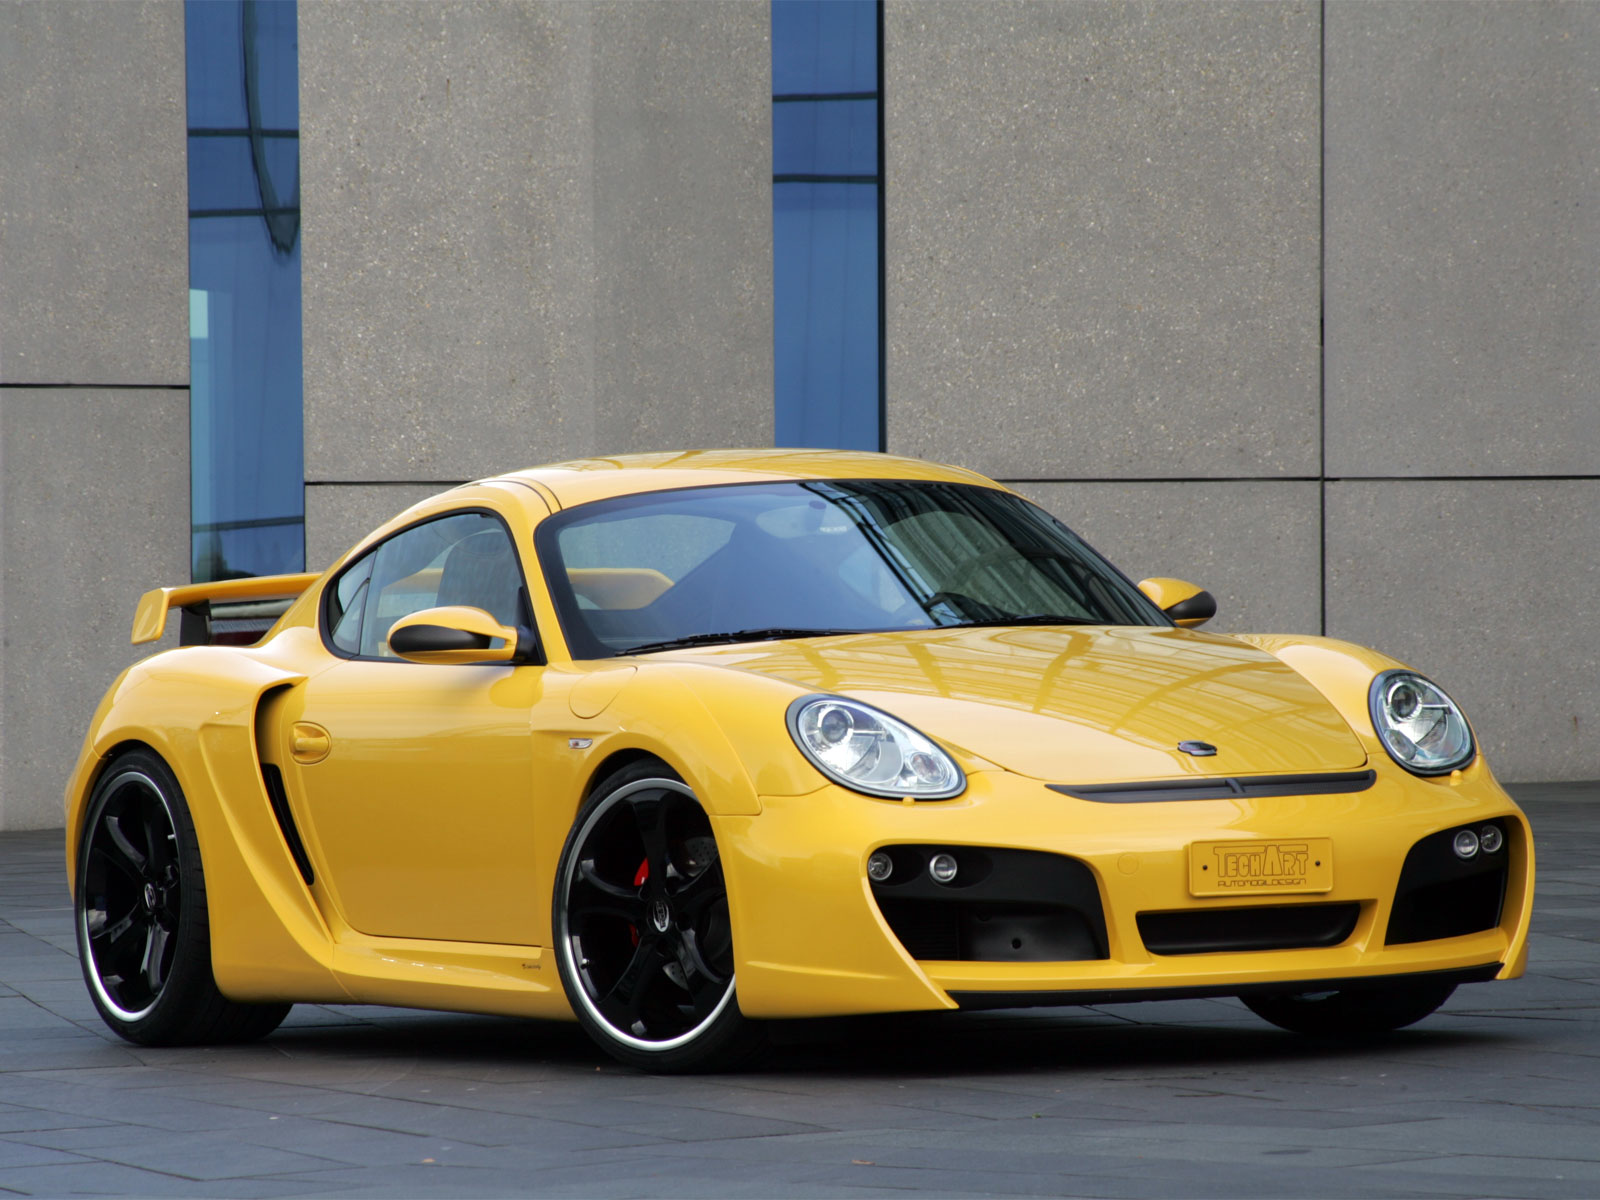 2007 techart cayman s widebody pictures history value research news. Black Bedroom Furniture Sets. Home Design Ideas